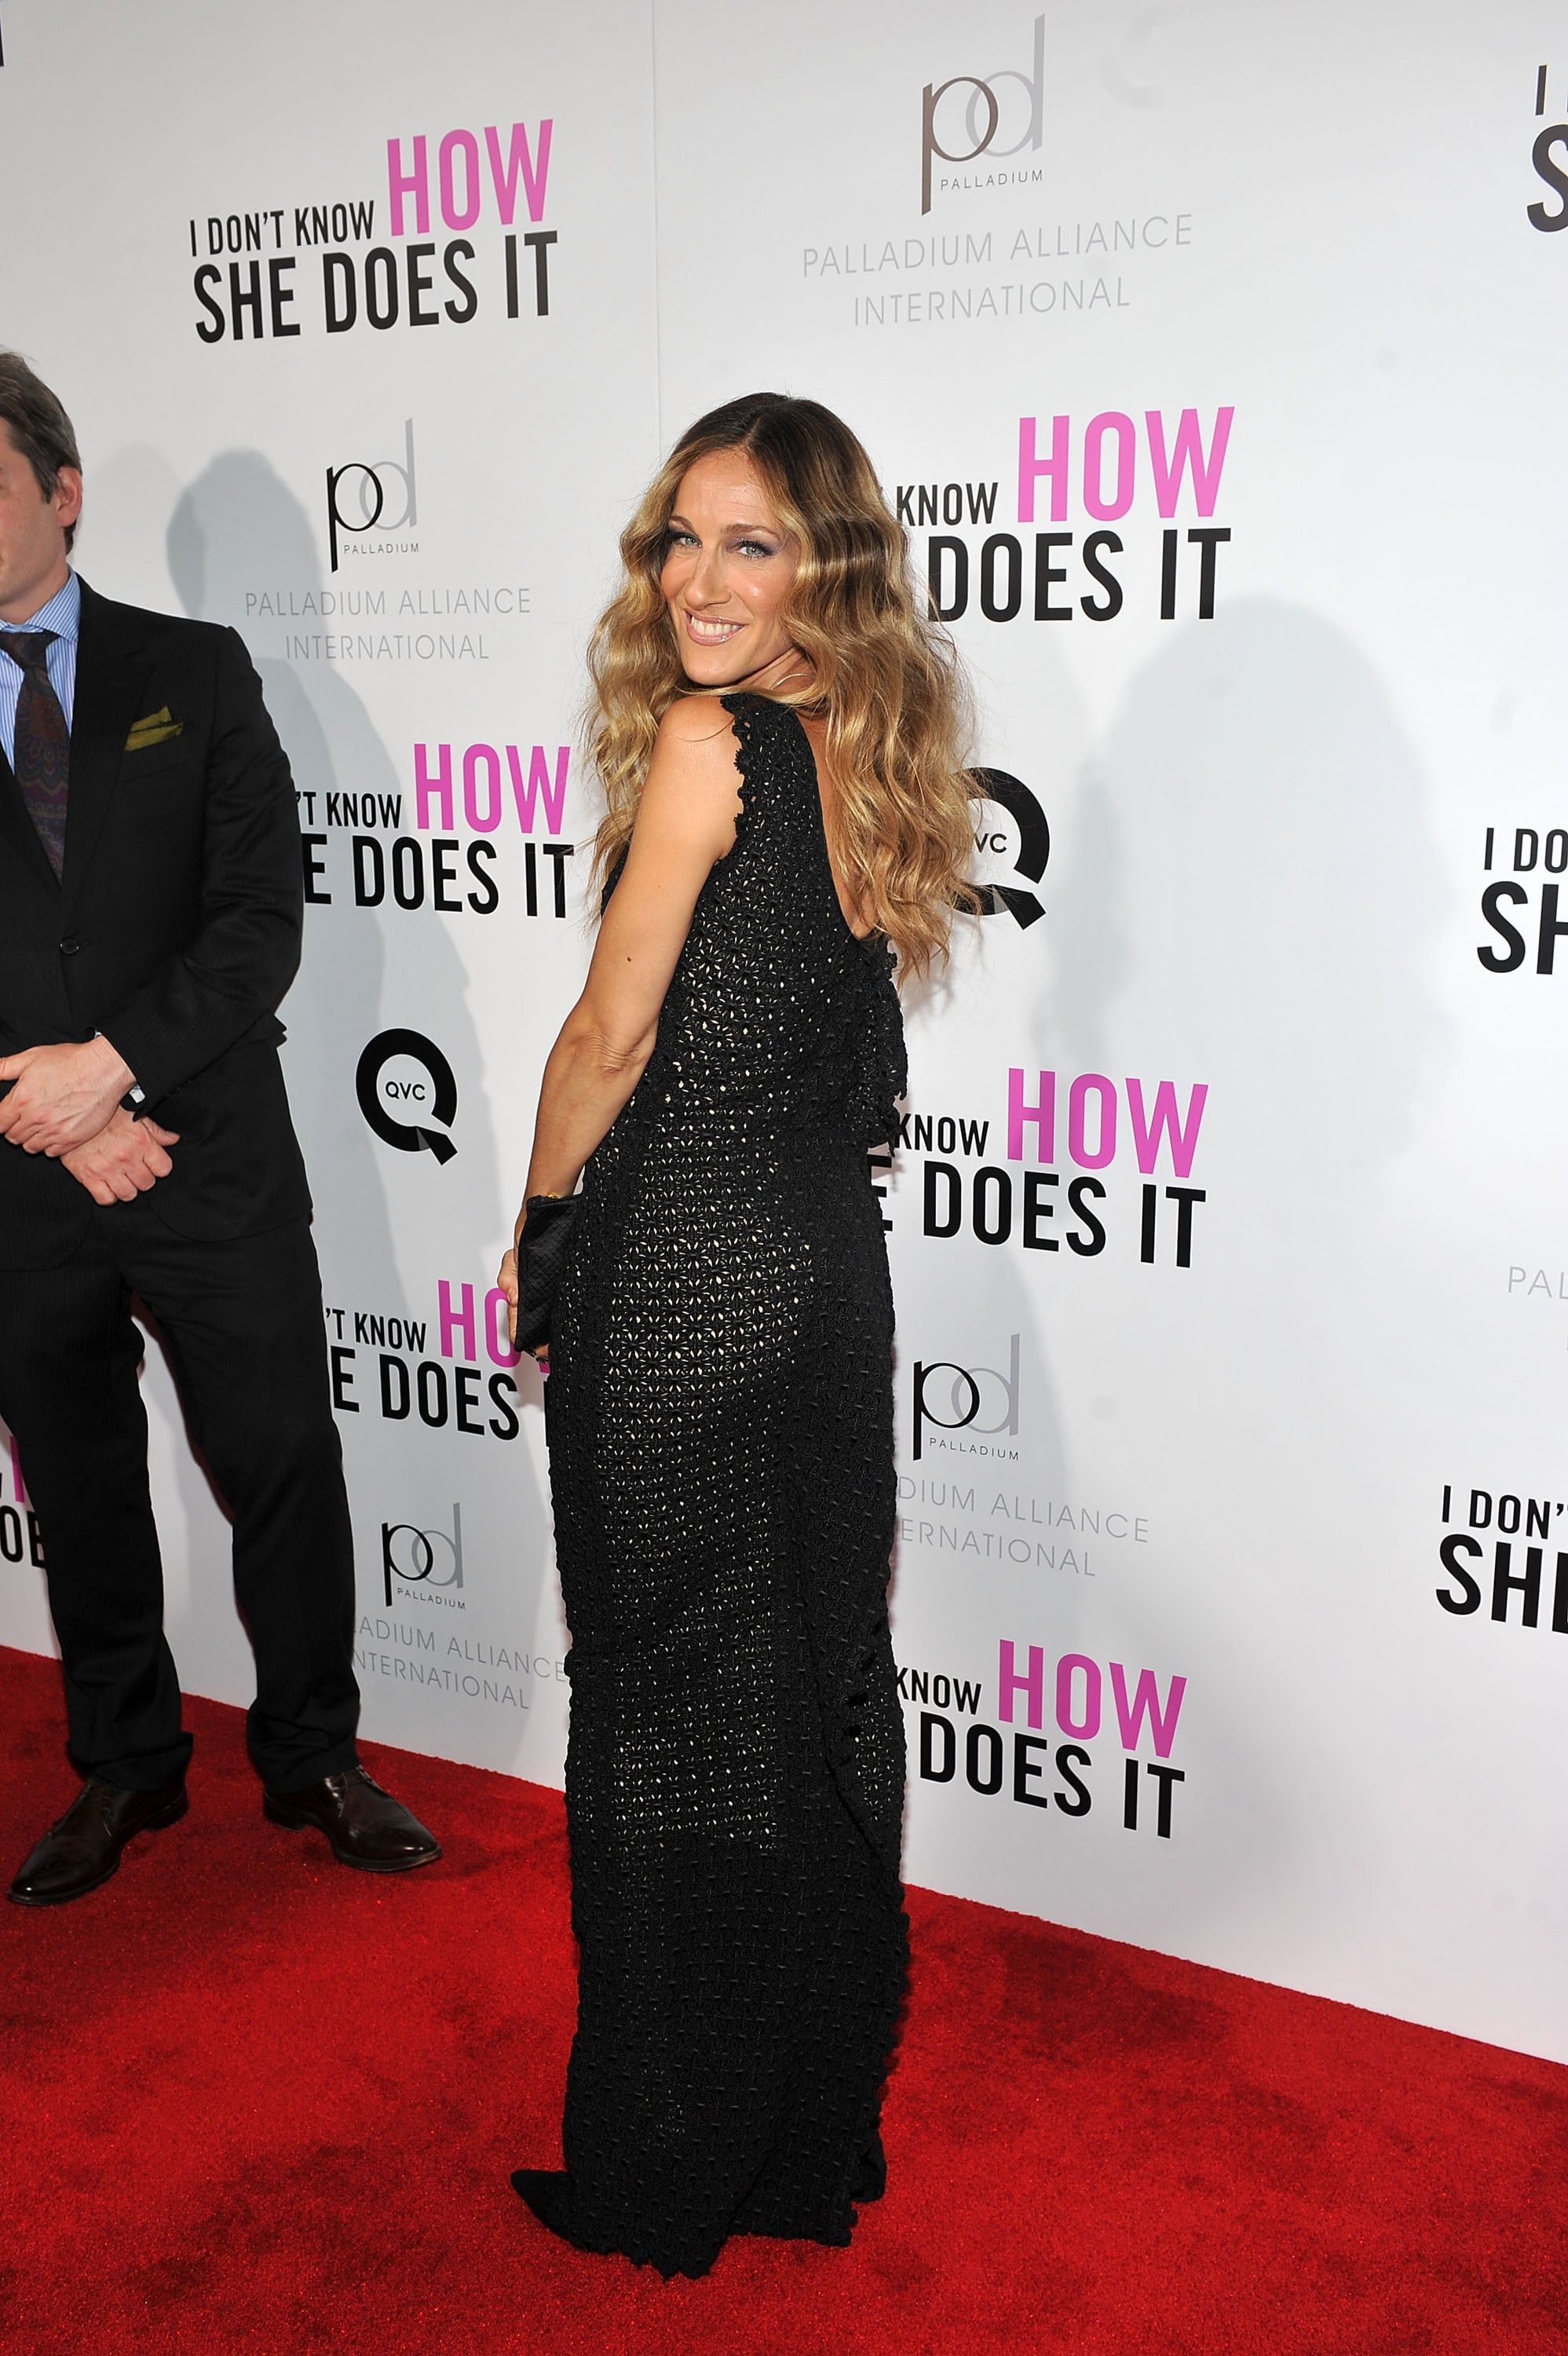 Sarah Jessica Parker showed off the back of her gown.